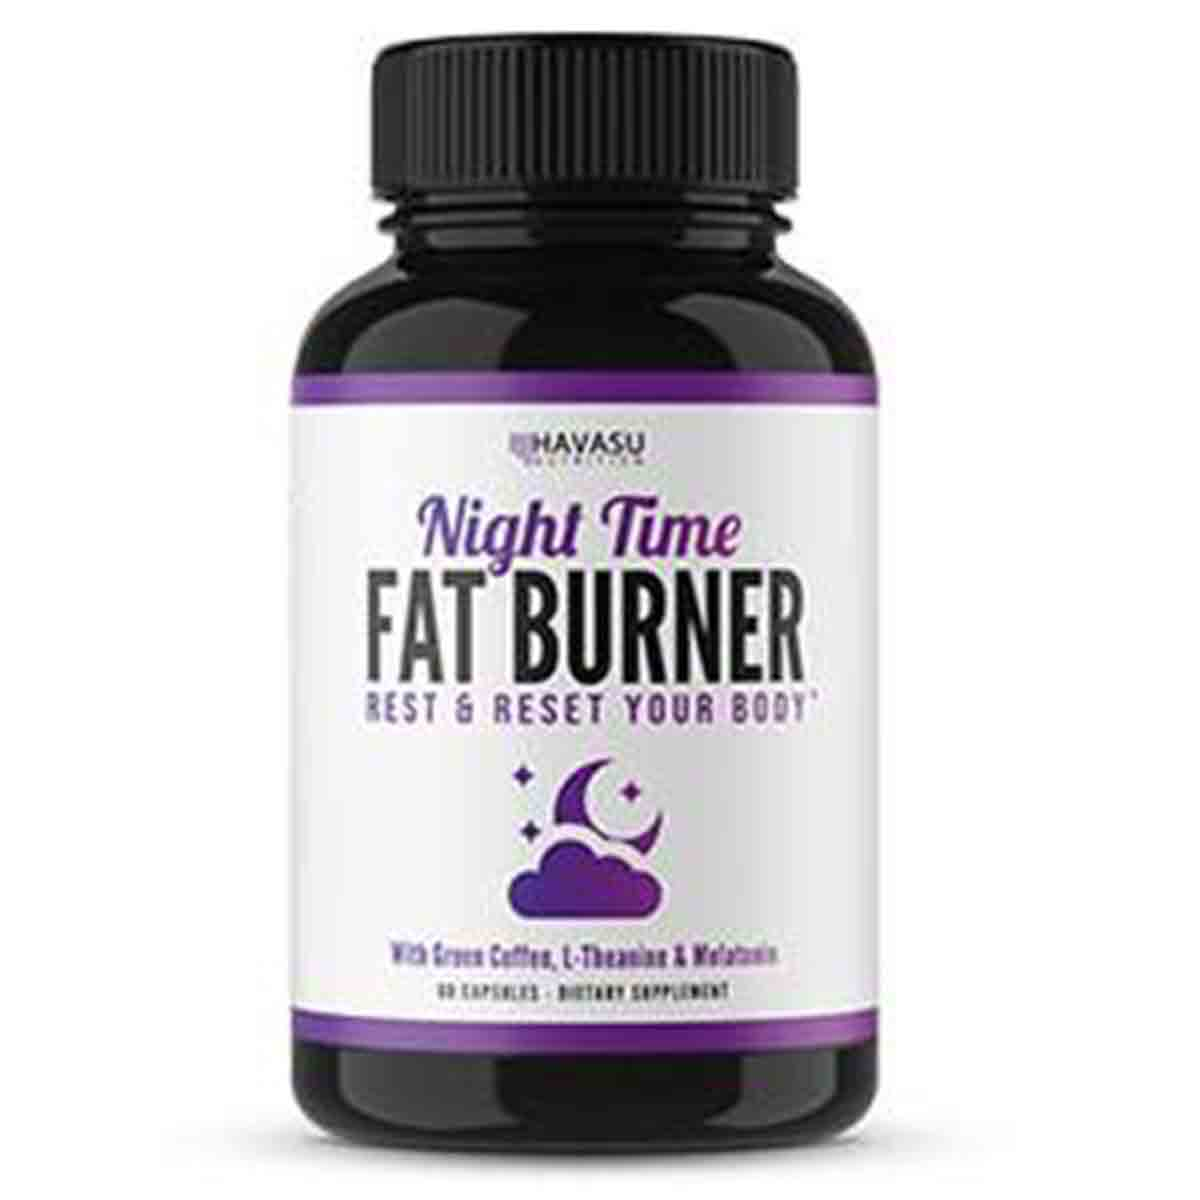 Havasu Nutrition Night Time Fat Burner